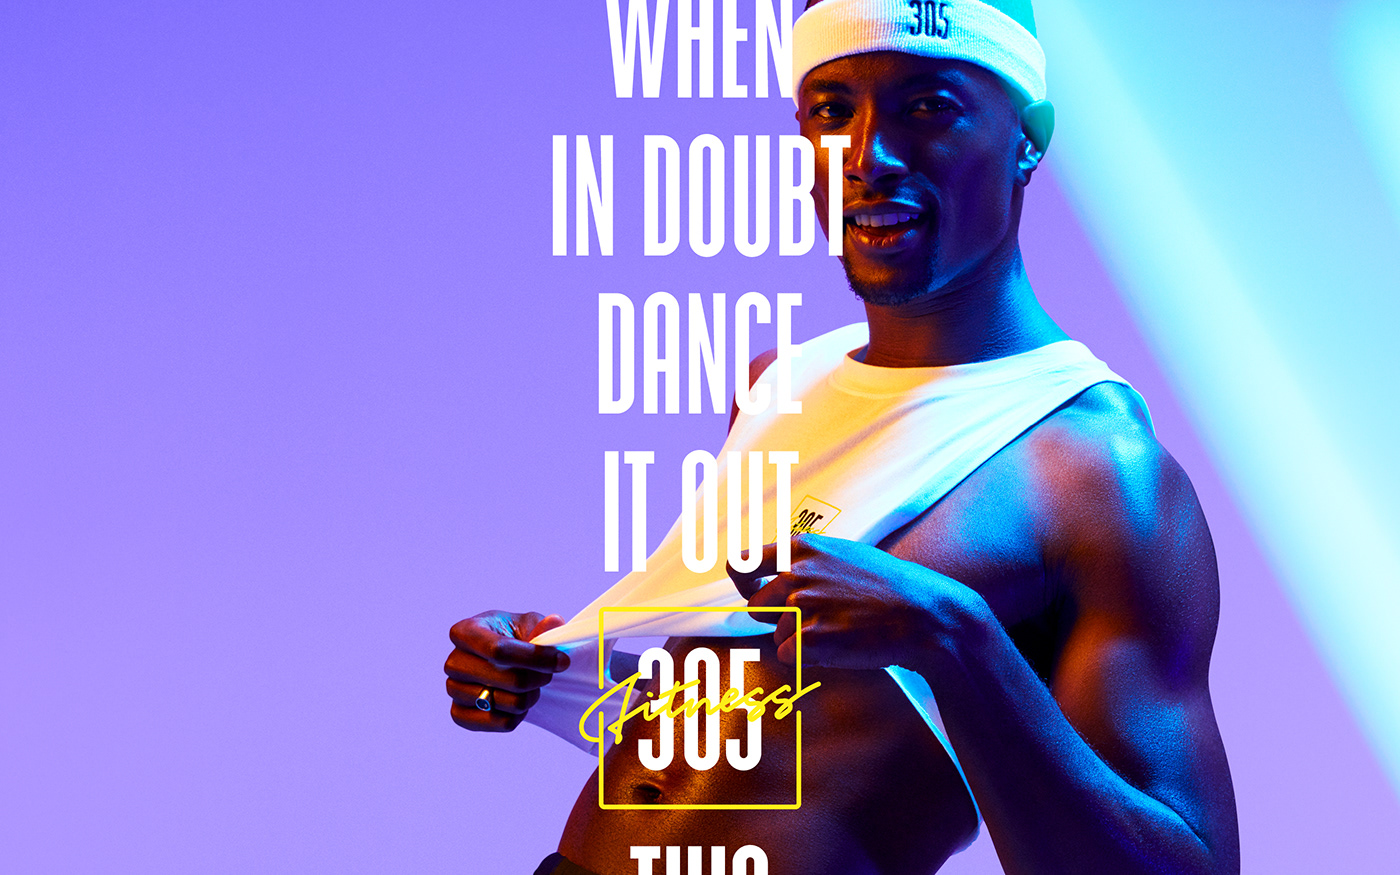 DANCE   workout nyc color Fun Nightlife fitness cardio sweat party